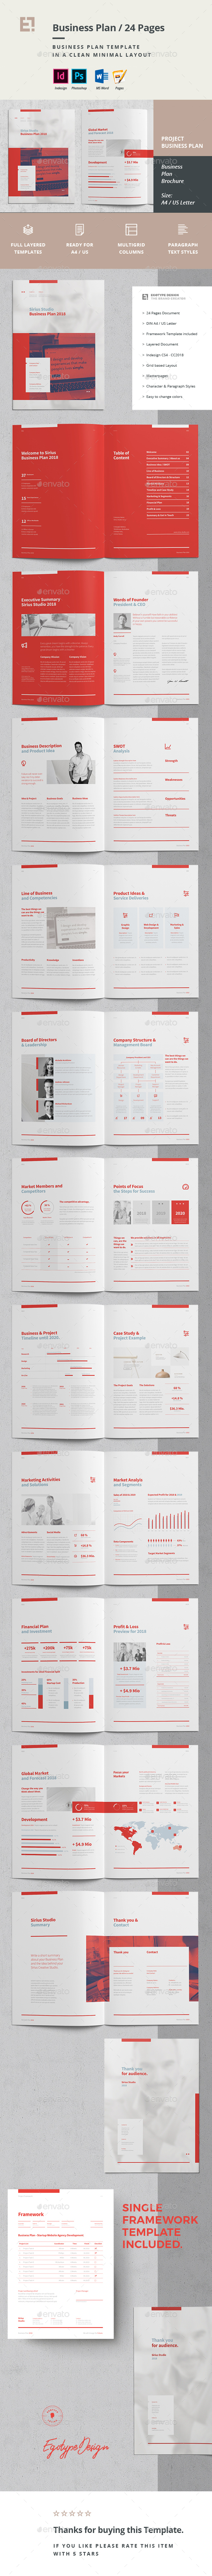 Case Study Stationery and Design Templates from GraphicRiver